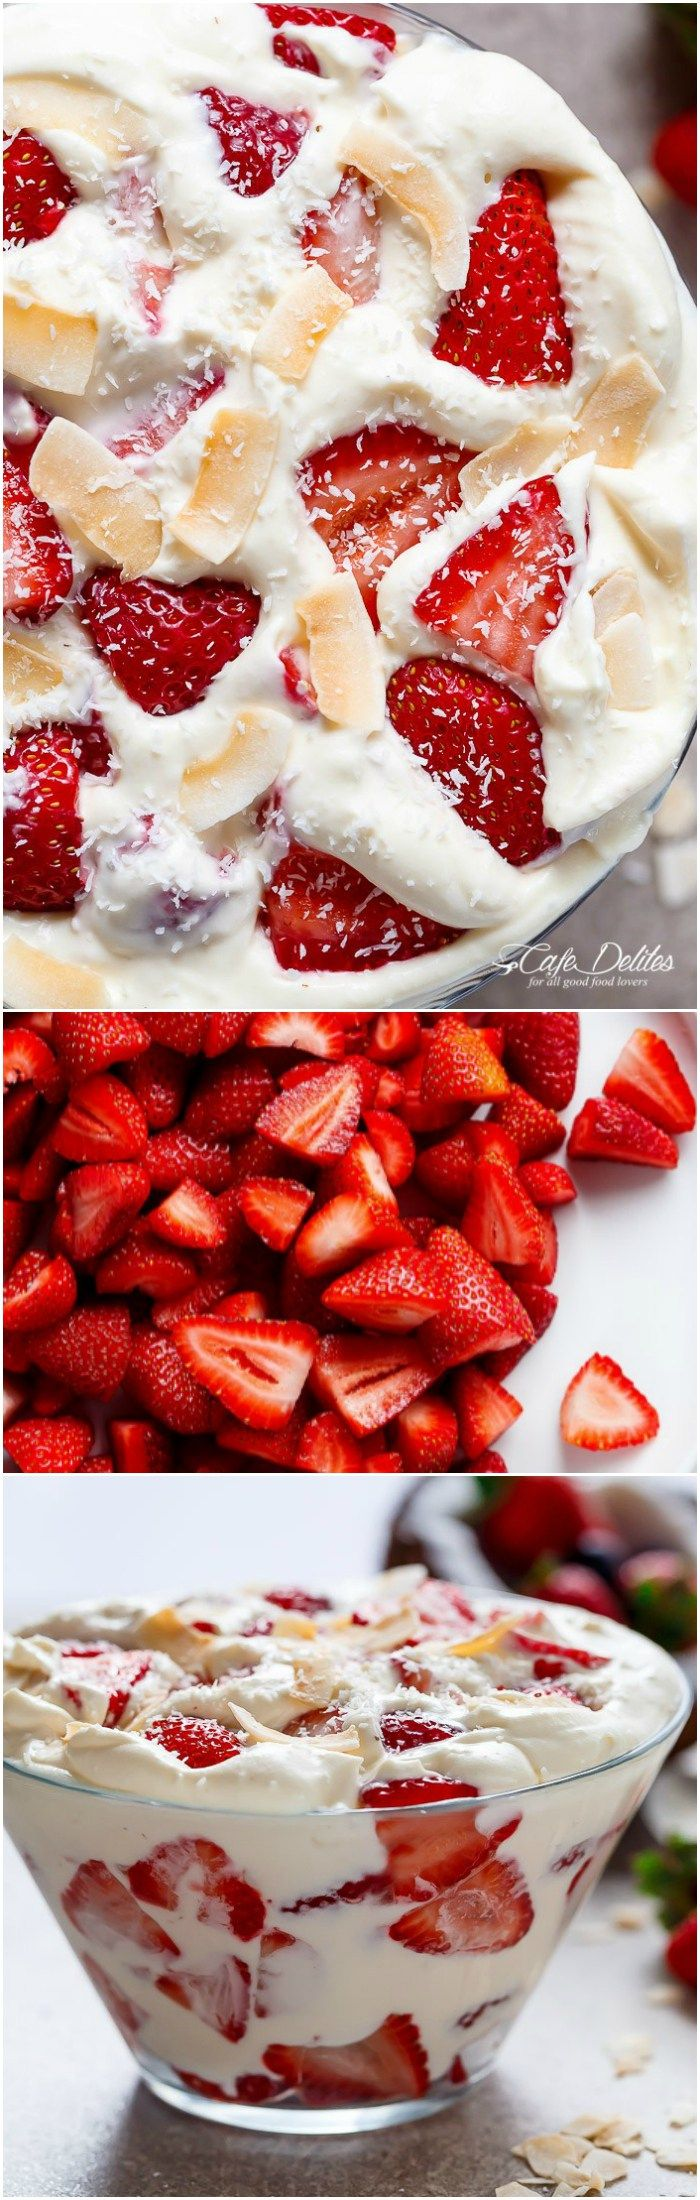 Strawberry-Coconut-Cheesecake-Salad Collage(Summer Bake Cream Cheeses)